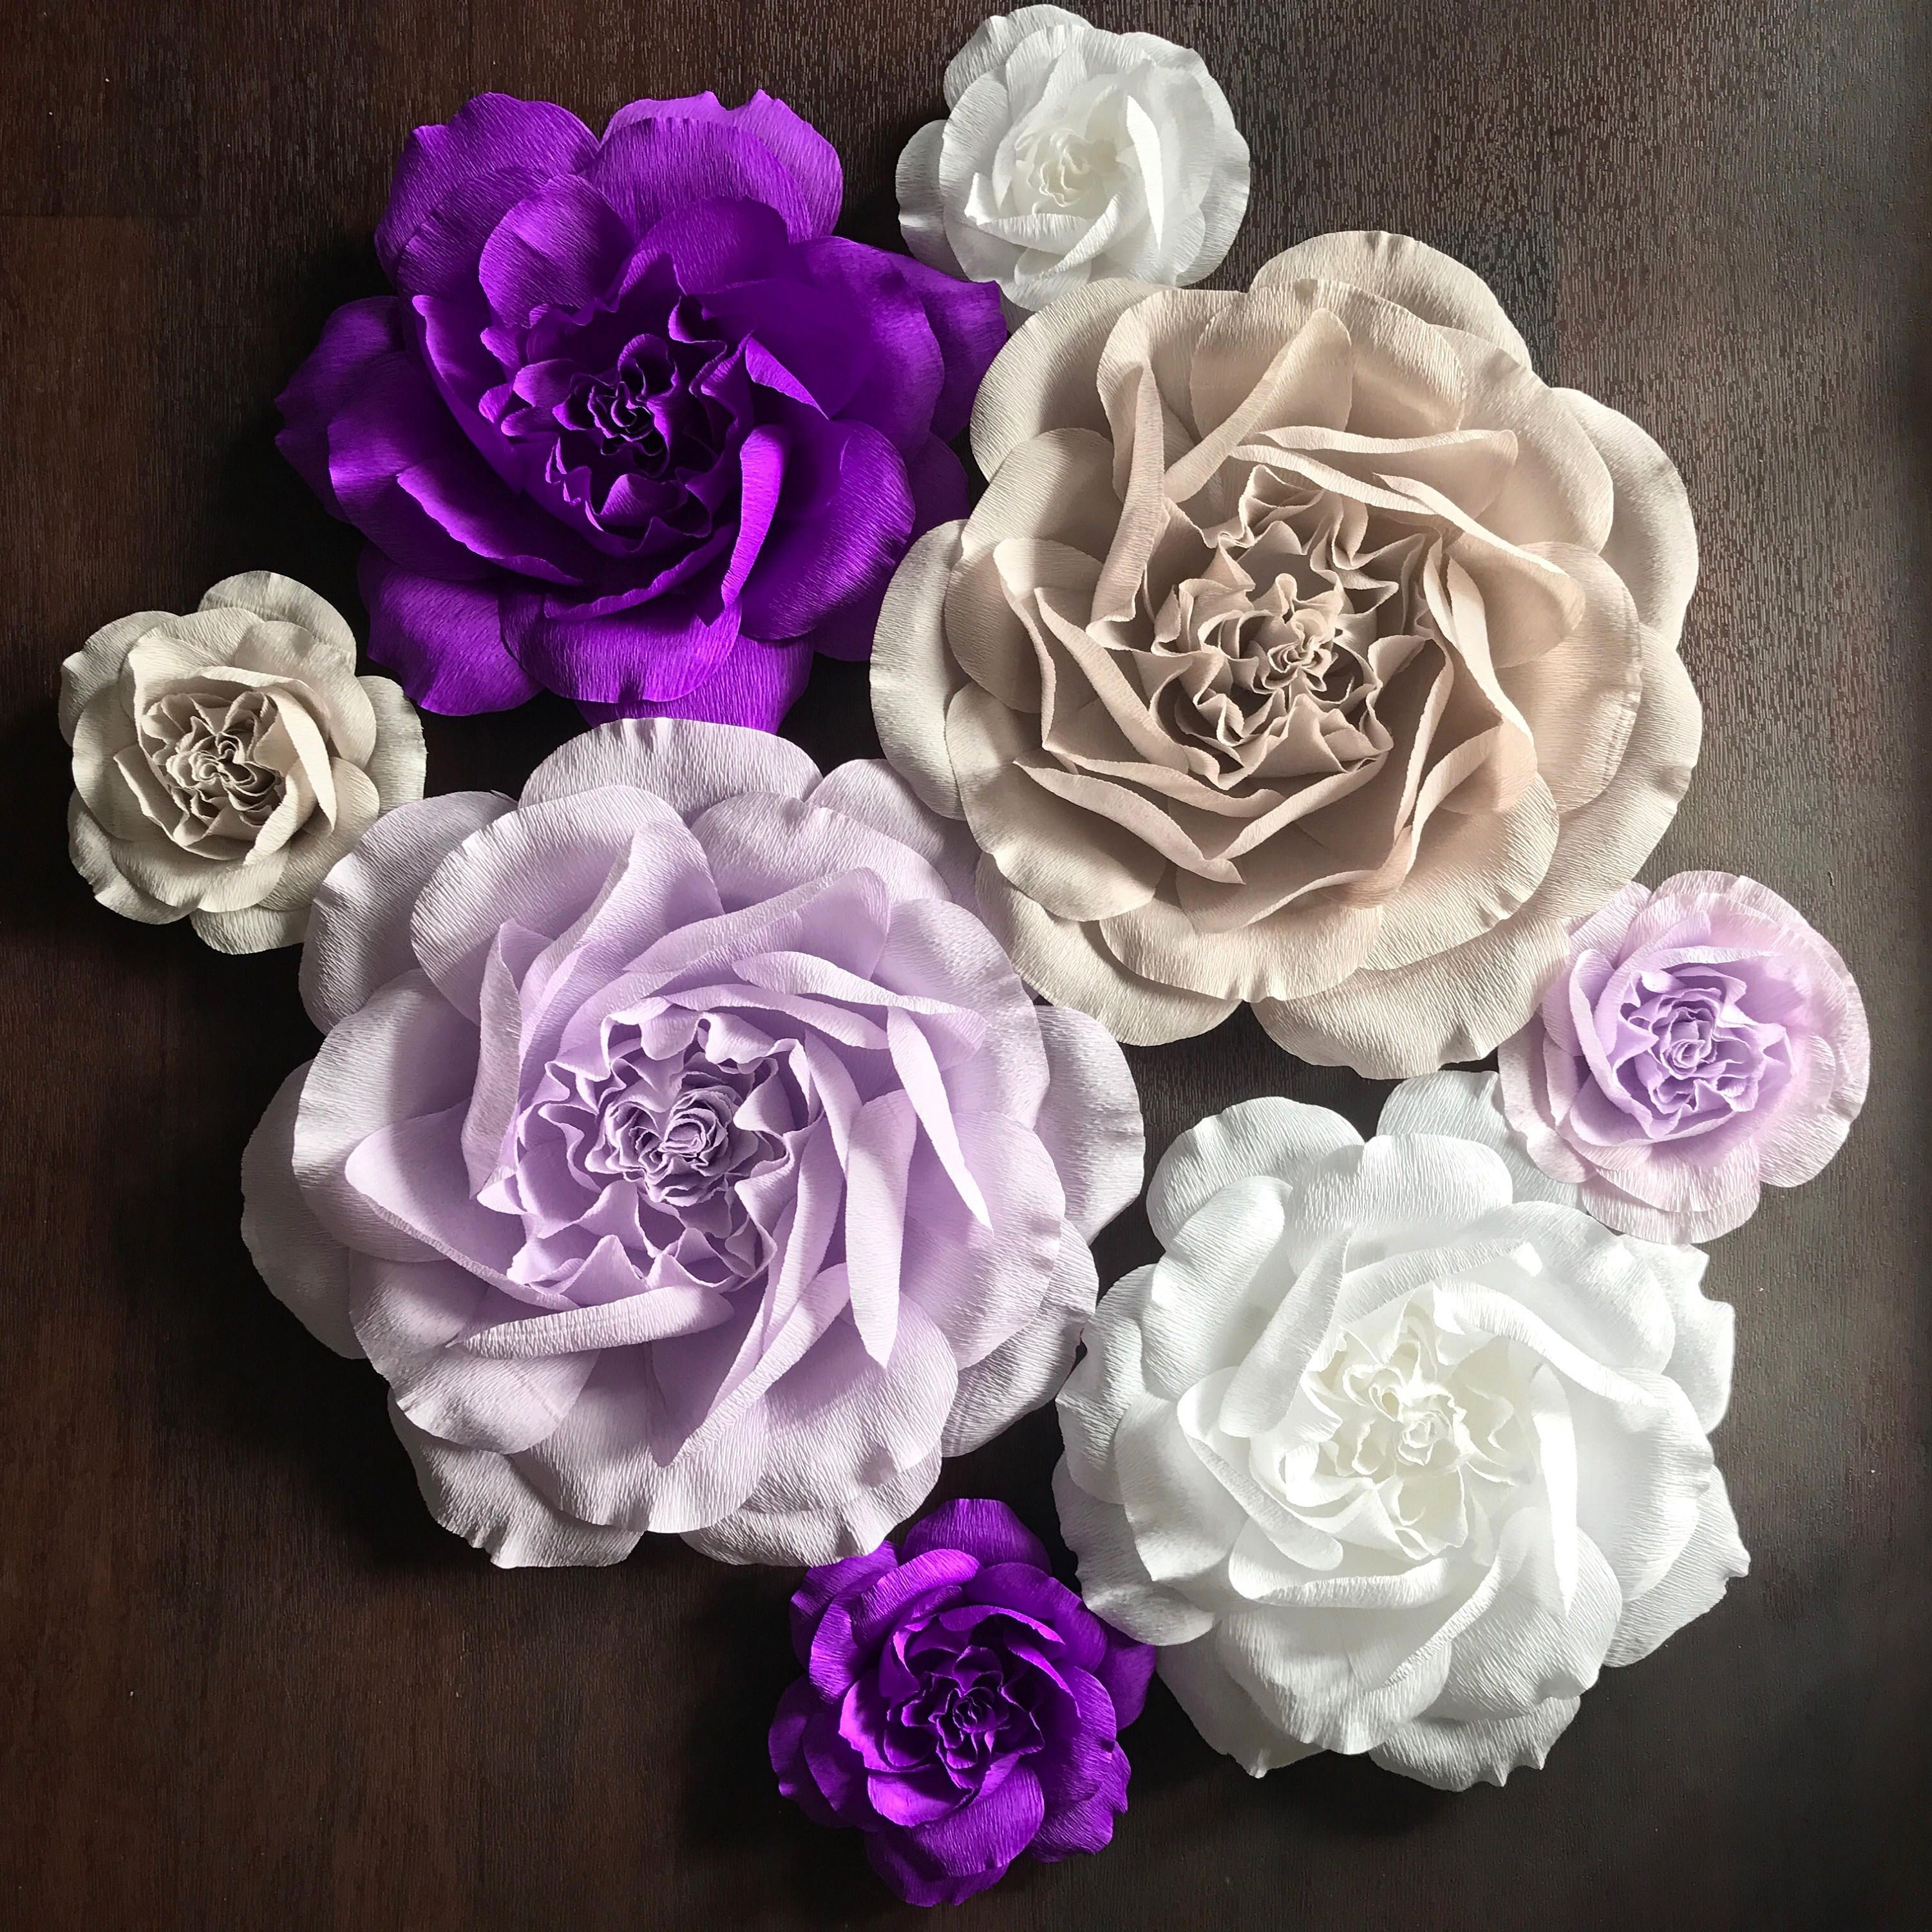 Large Paper Flowers - Paper Flower Wall - Crepe Paper Rose Wall Flower Set - Paper Rose Backdrop - 3D Paper Flowers-Purple Paper Flowers #paperflowerswedding